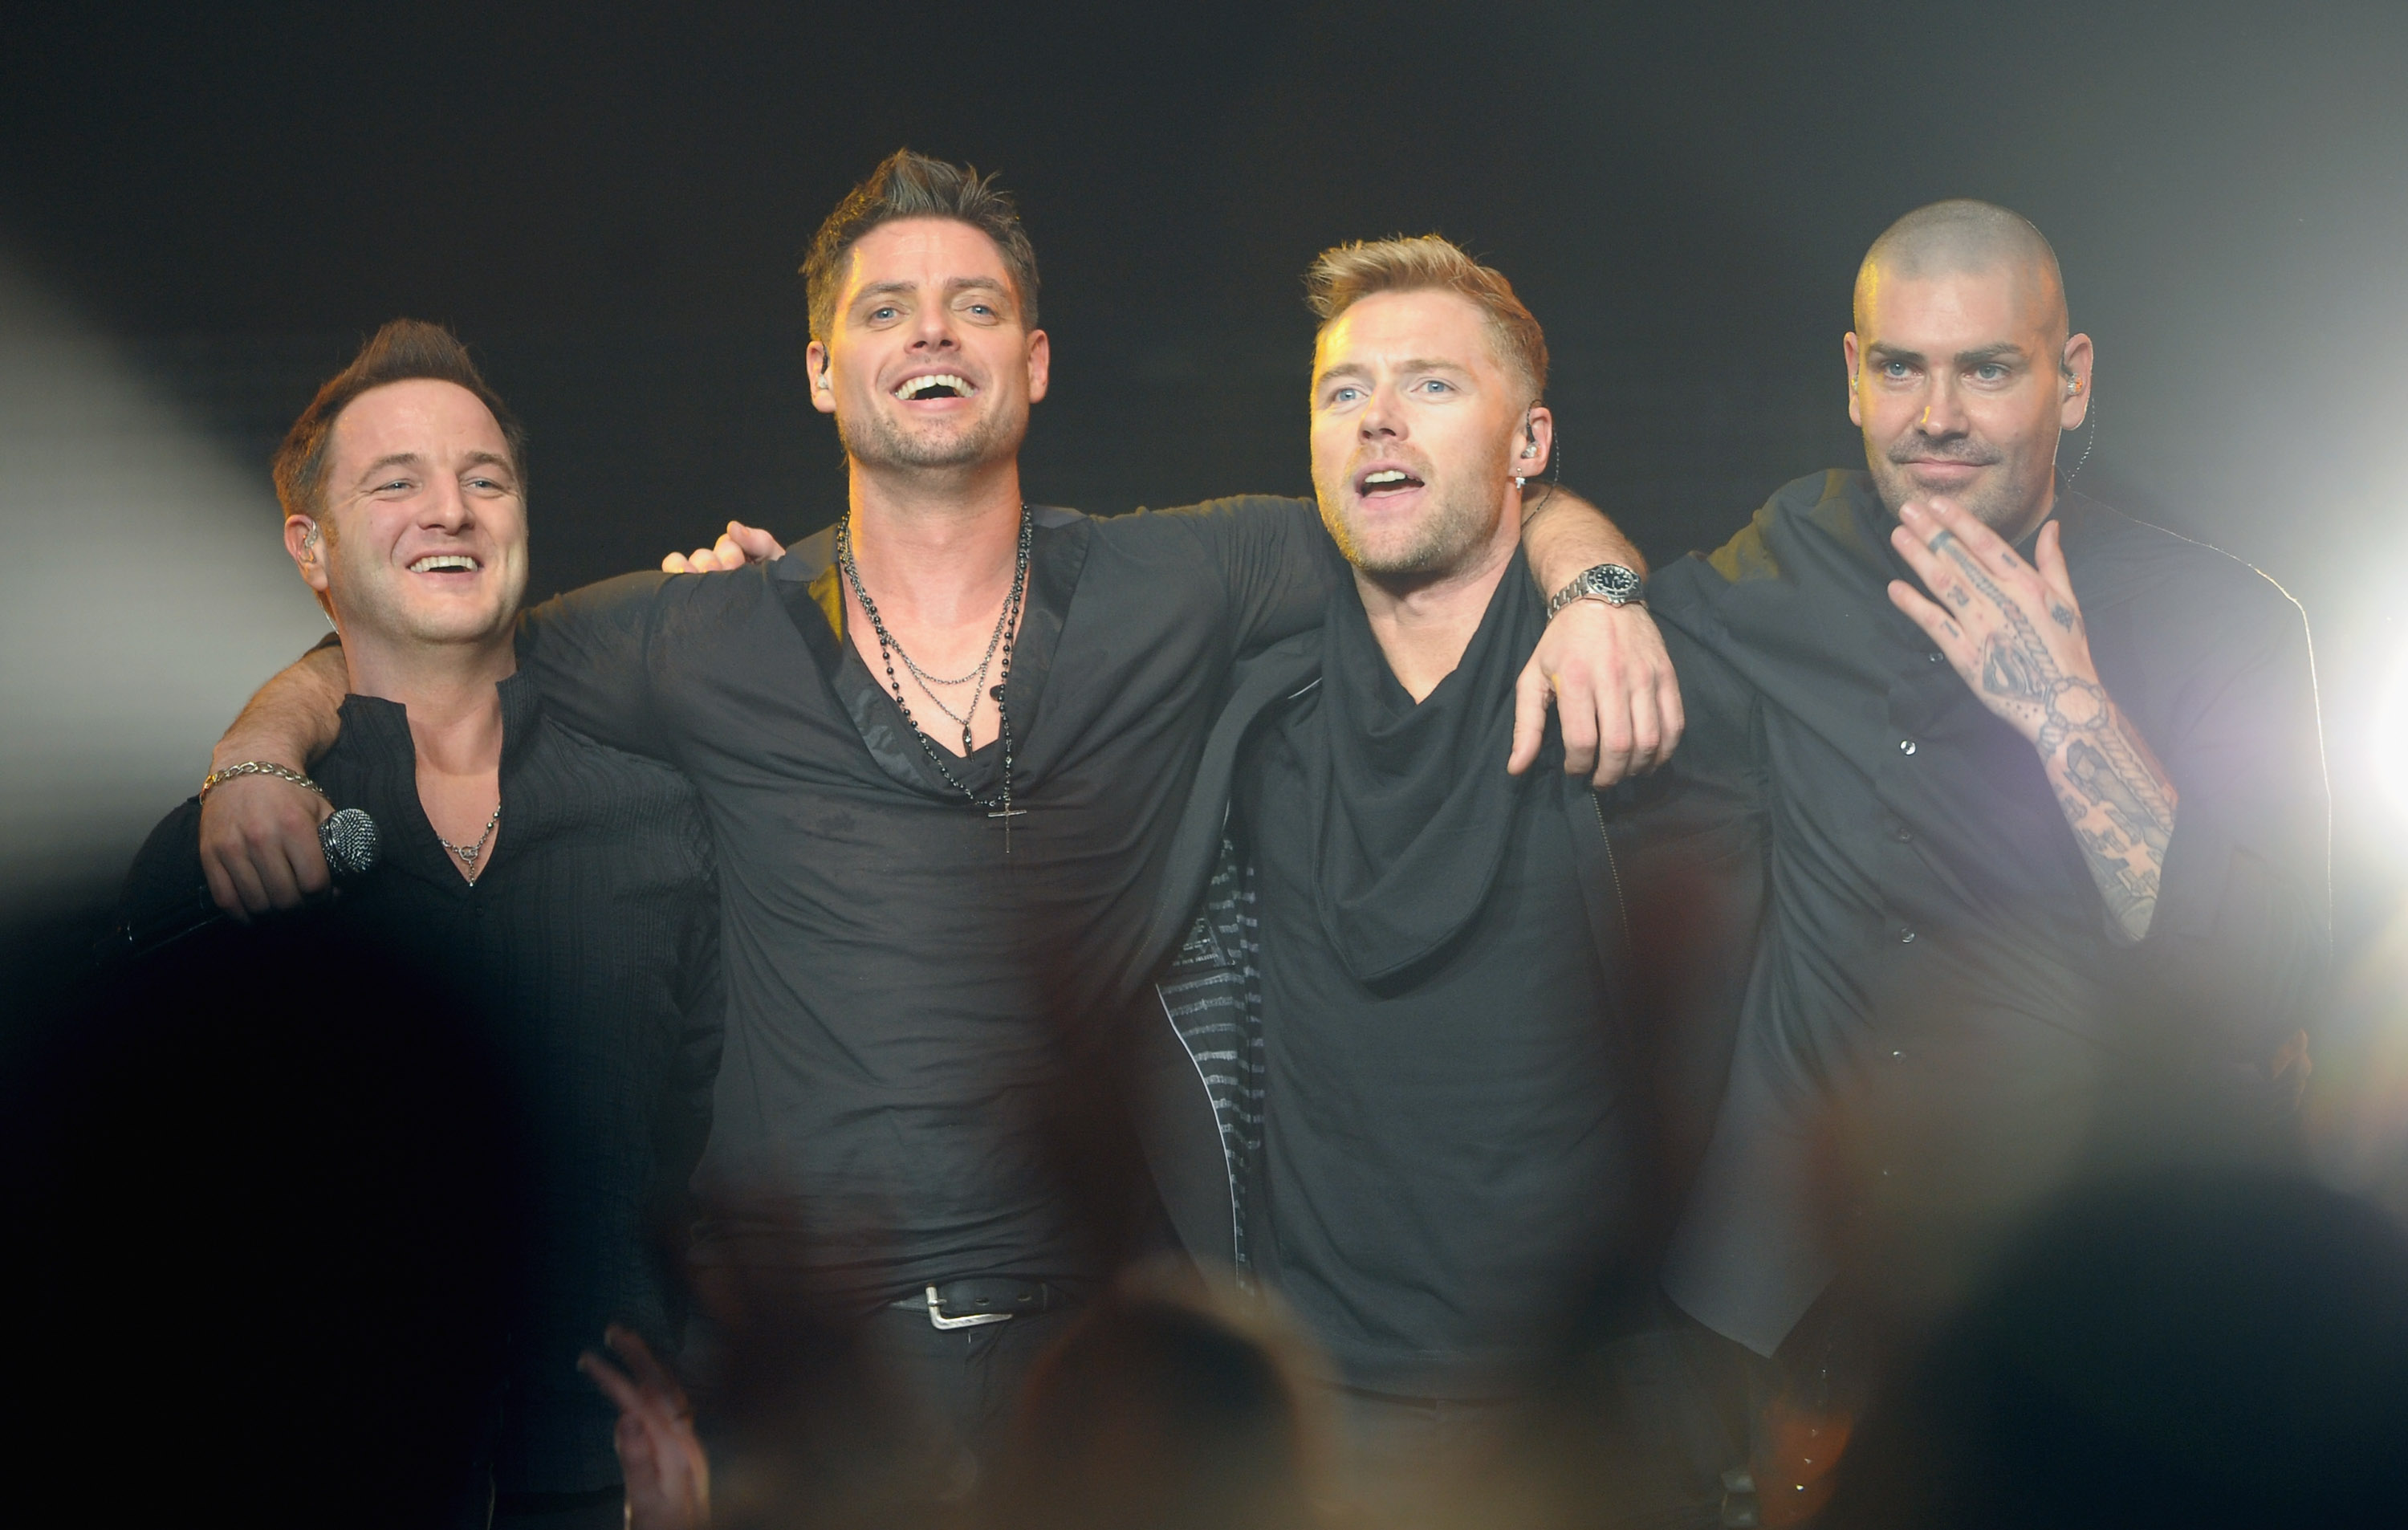 Ronan Keating hints at Boyzone reunion tour to mark 25th anniversary – and makes us feel really old